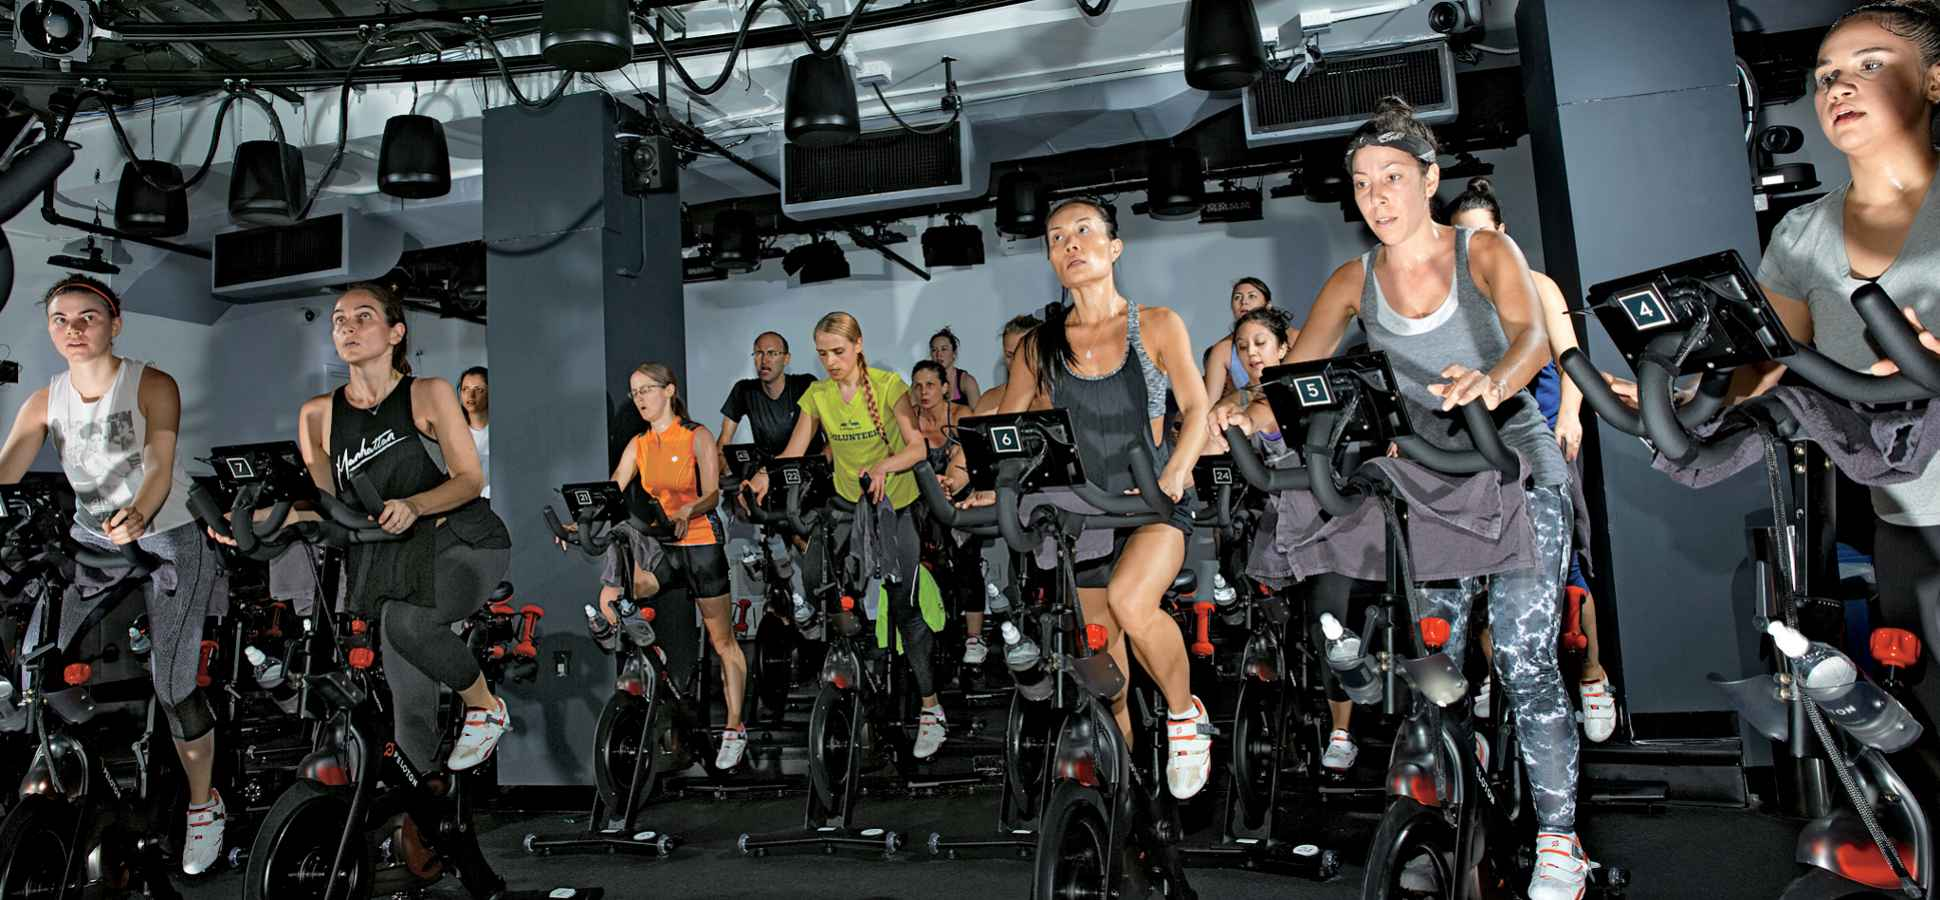 6026a251f Meet the Cycling Startup that s Reinventing Studio Fitness